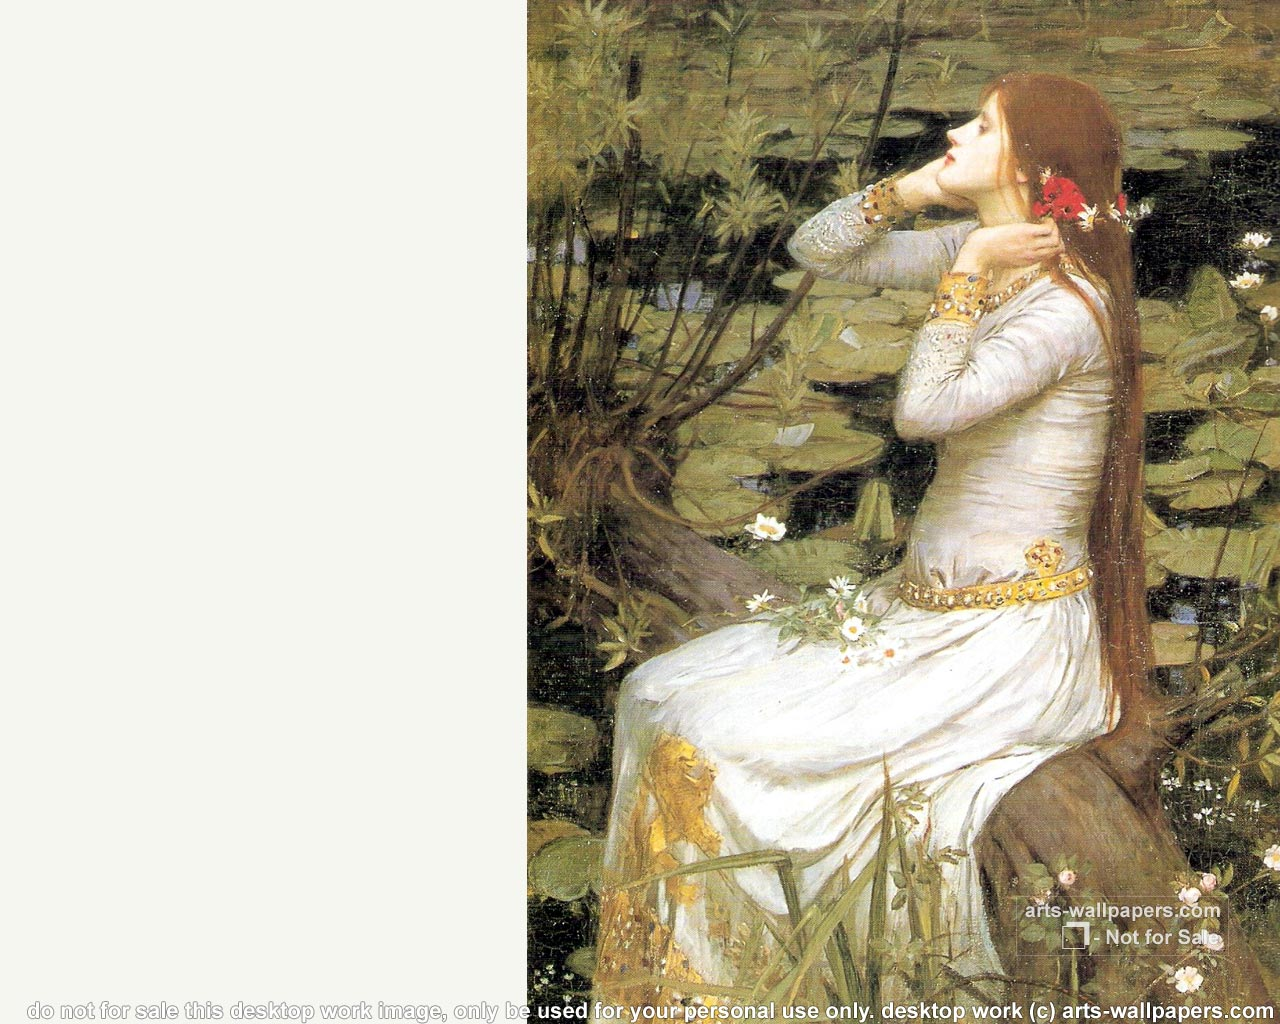 JW Waterhouse Wallpaper Paintings Wallpapes Pictures 1280x1024